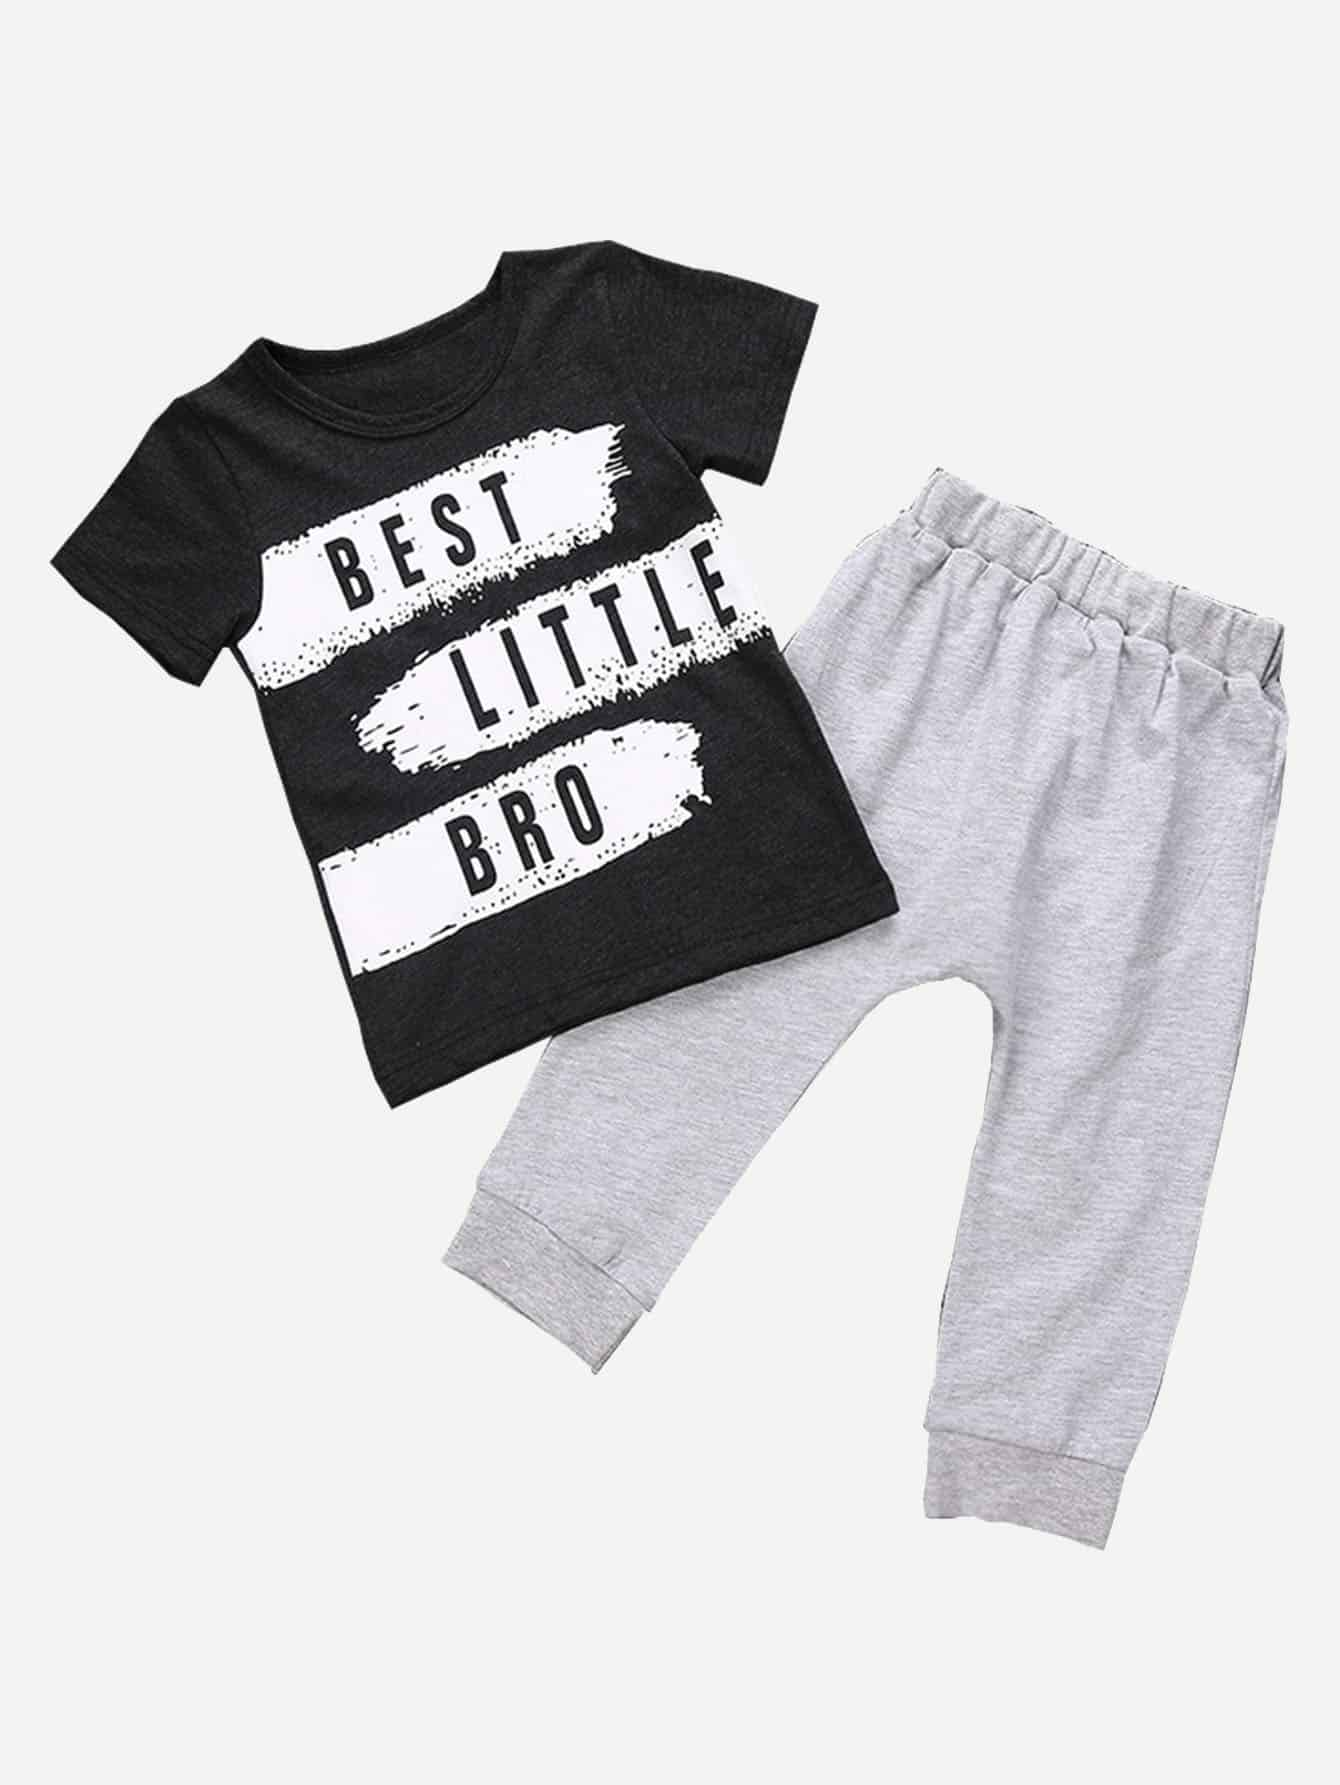 Boys Letter Print Tee With Plain Pants kids letter print sleeveless tee with tropical print pants